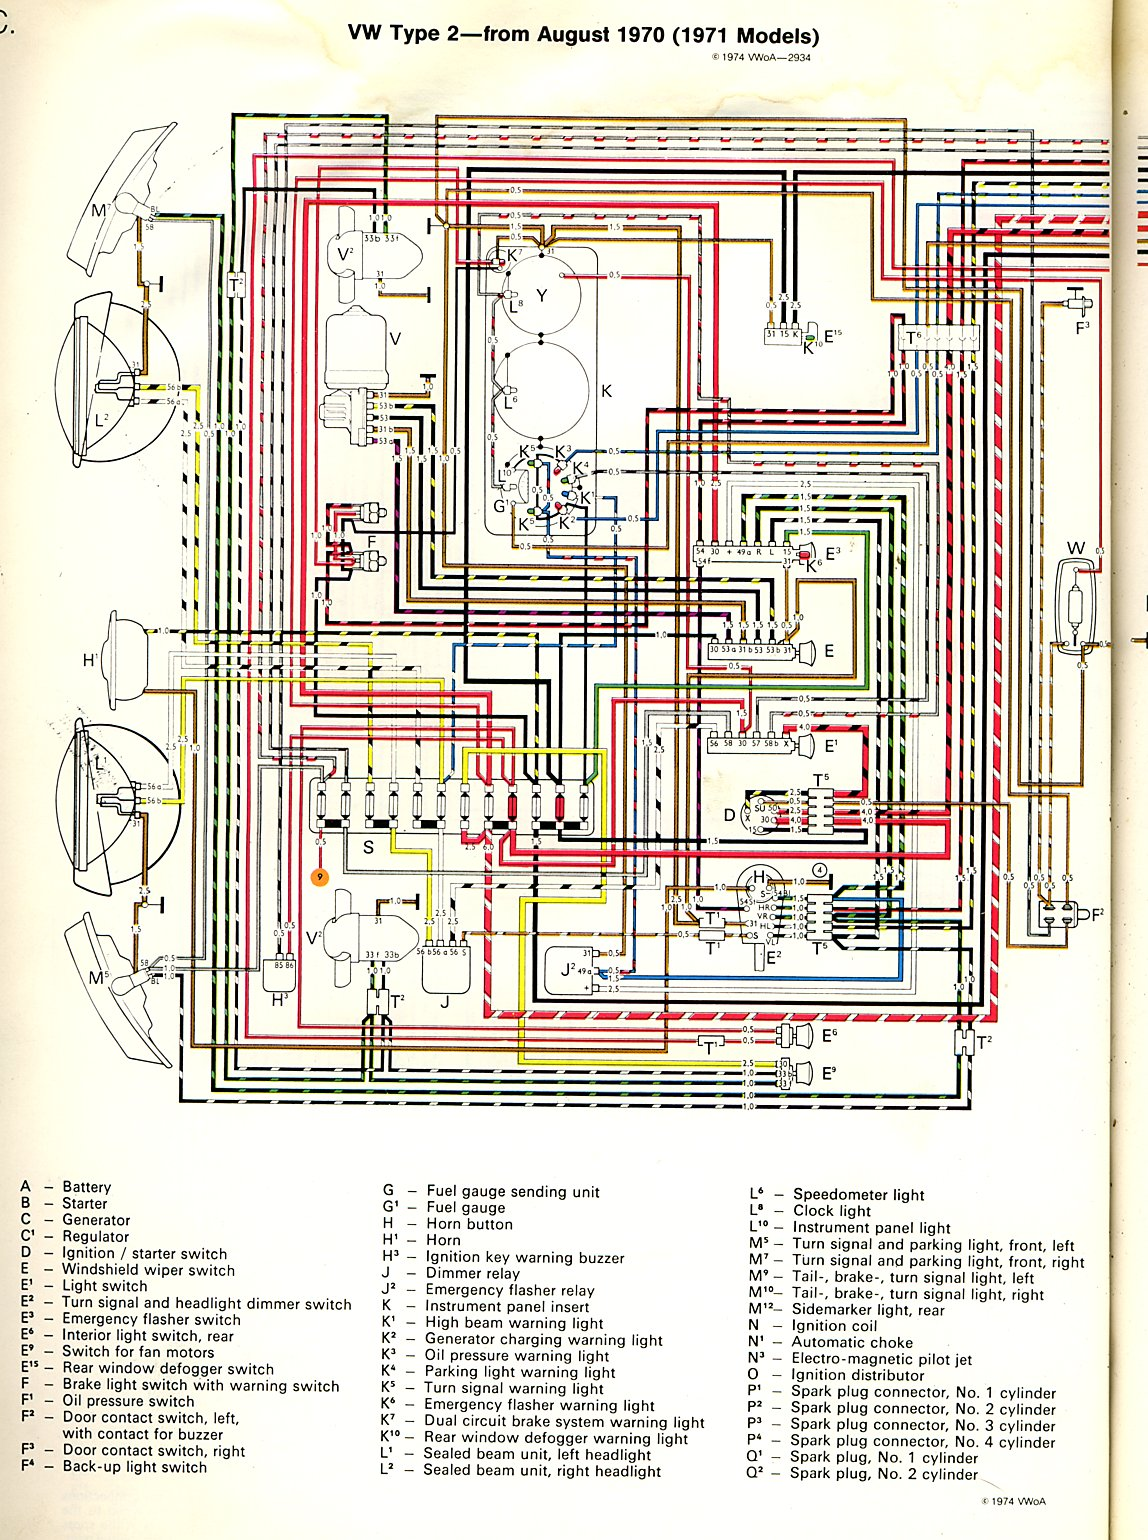 1977 vw bus wiring diagram wiring schematics diagram rh enr green com wiring  harness 1973 vw